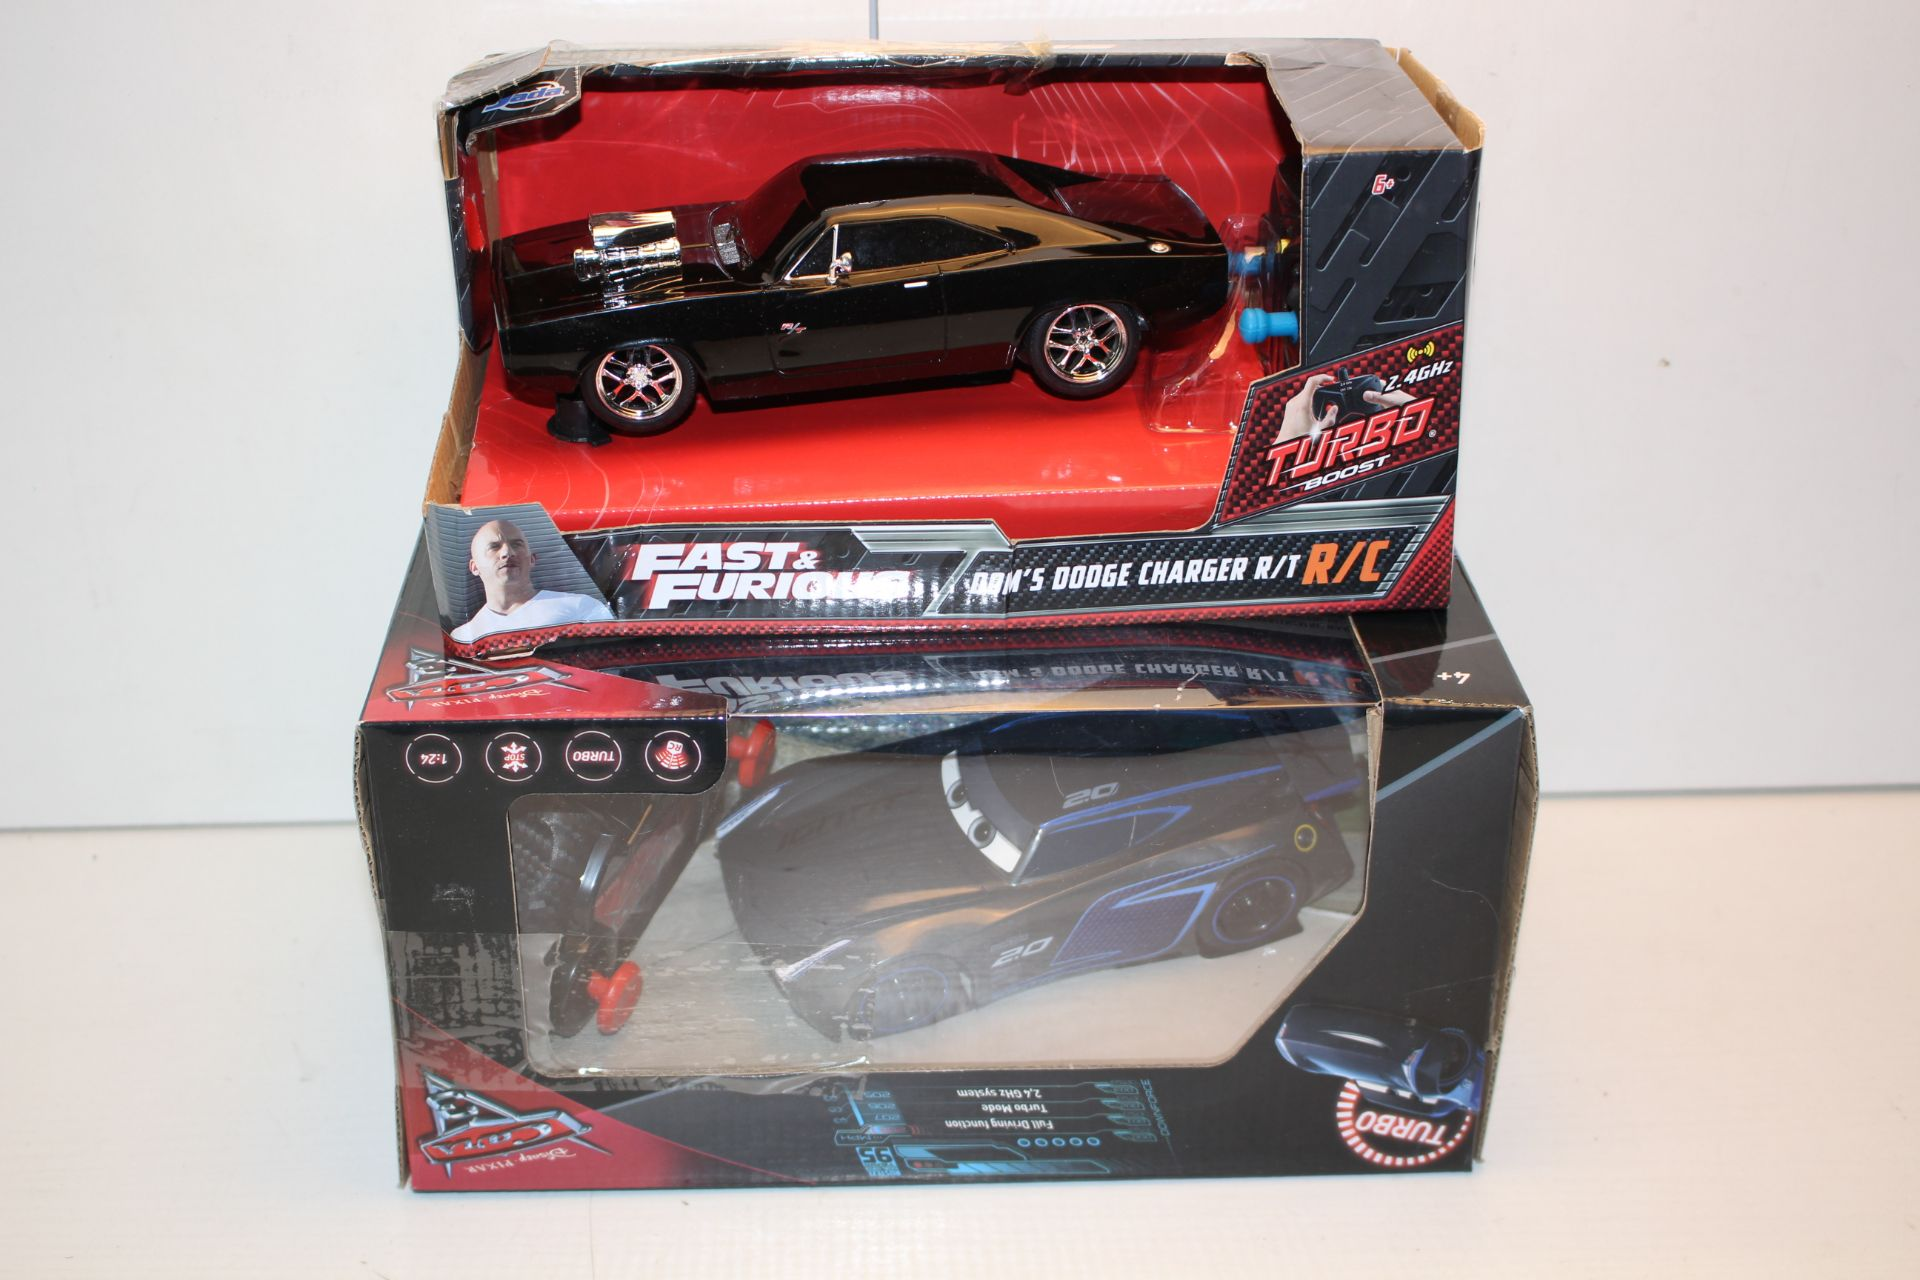 2X BOXED RC CARS TO INCLUDE FAST & FURIOUS DODGE CHARGER & DISNEY CARS TURBO Condition